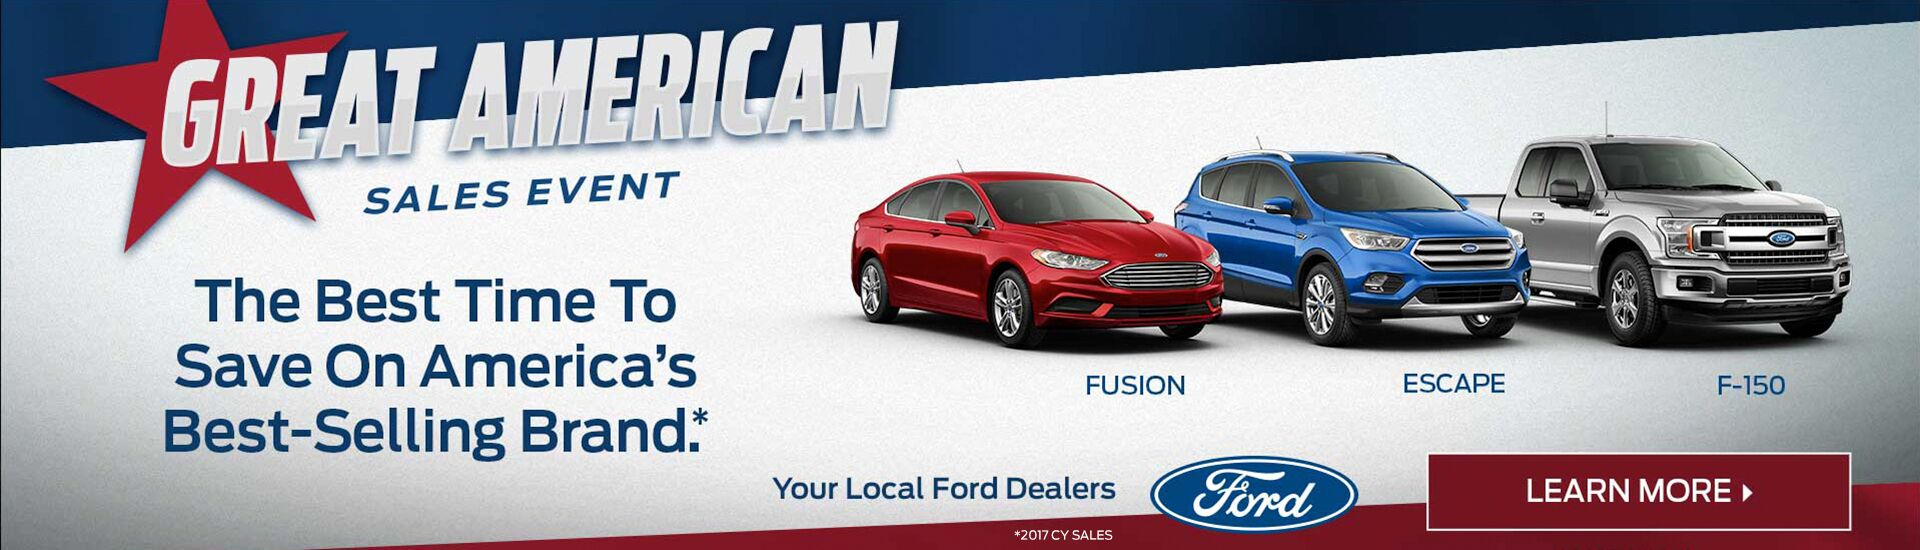 New Ford Fusion Escape and F-150